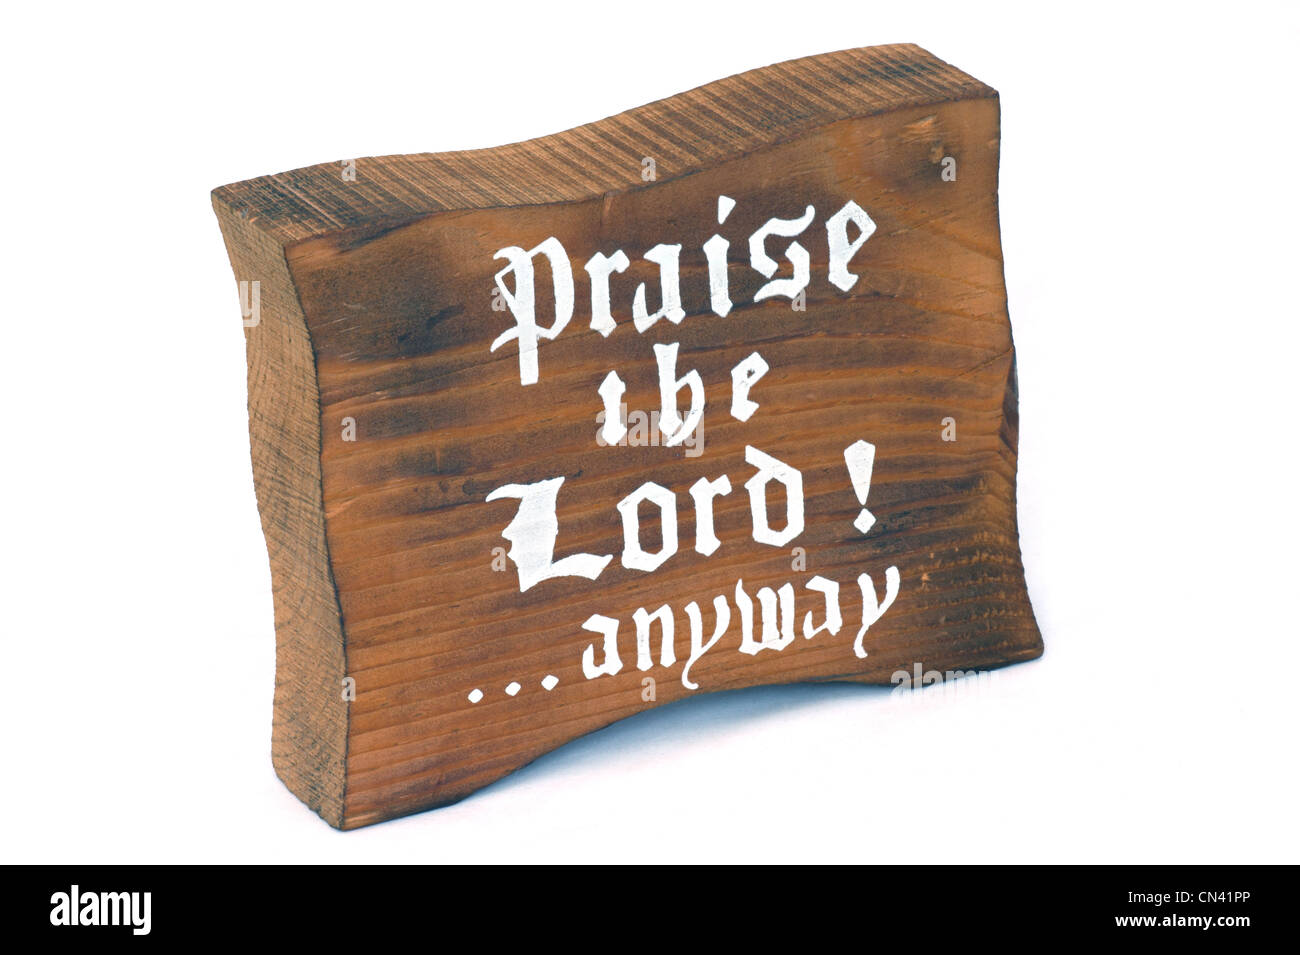 Praise the Lord anyway Christian sign - Stock Image